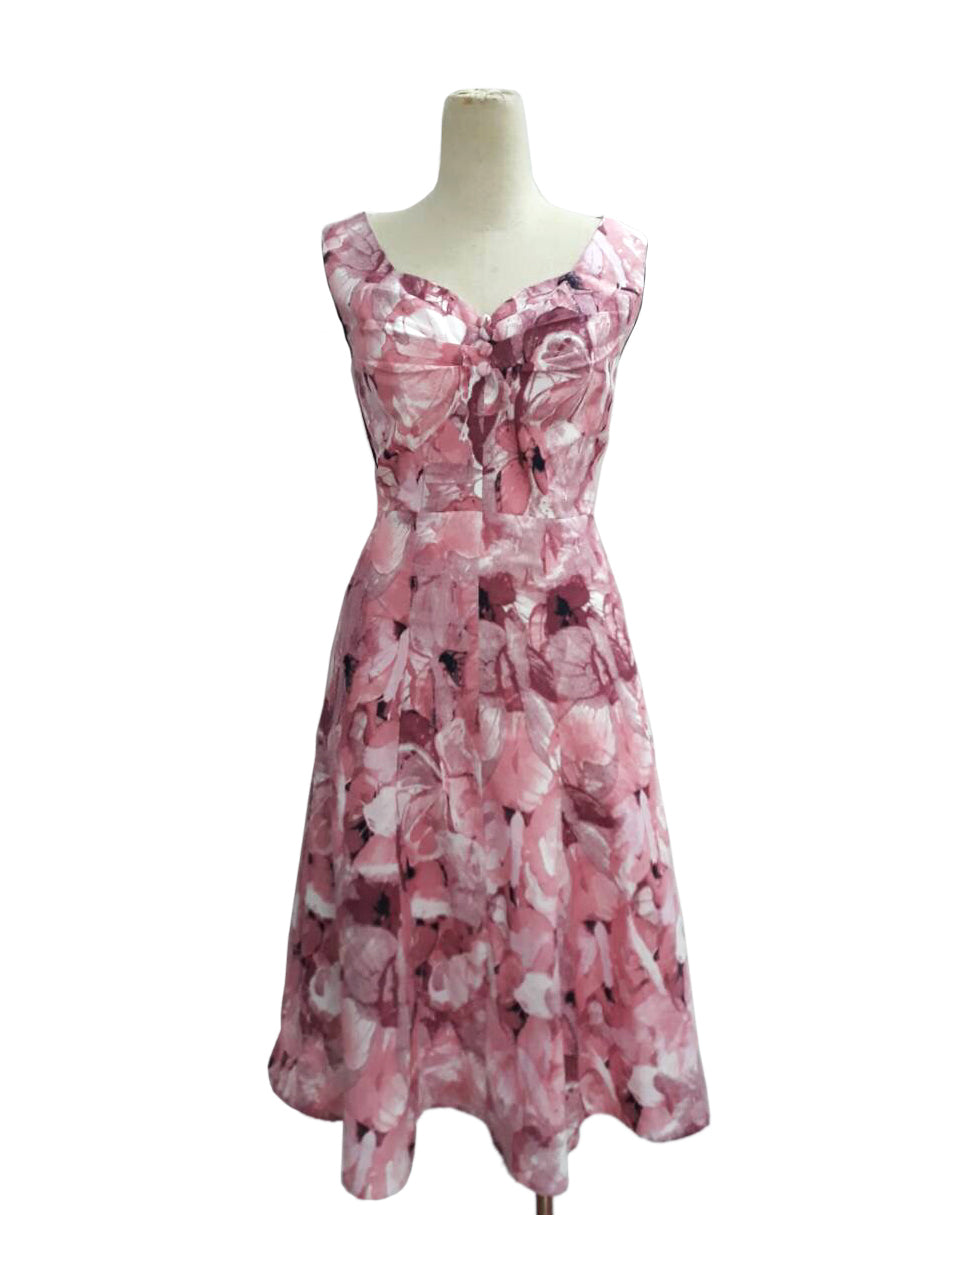 Olivia 50's Dress Elise Design $175.00 Dresses